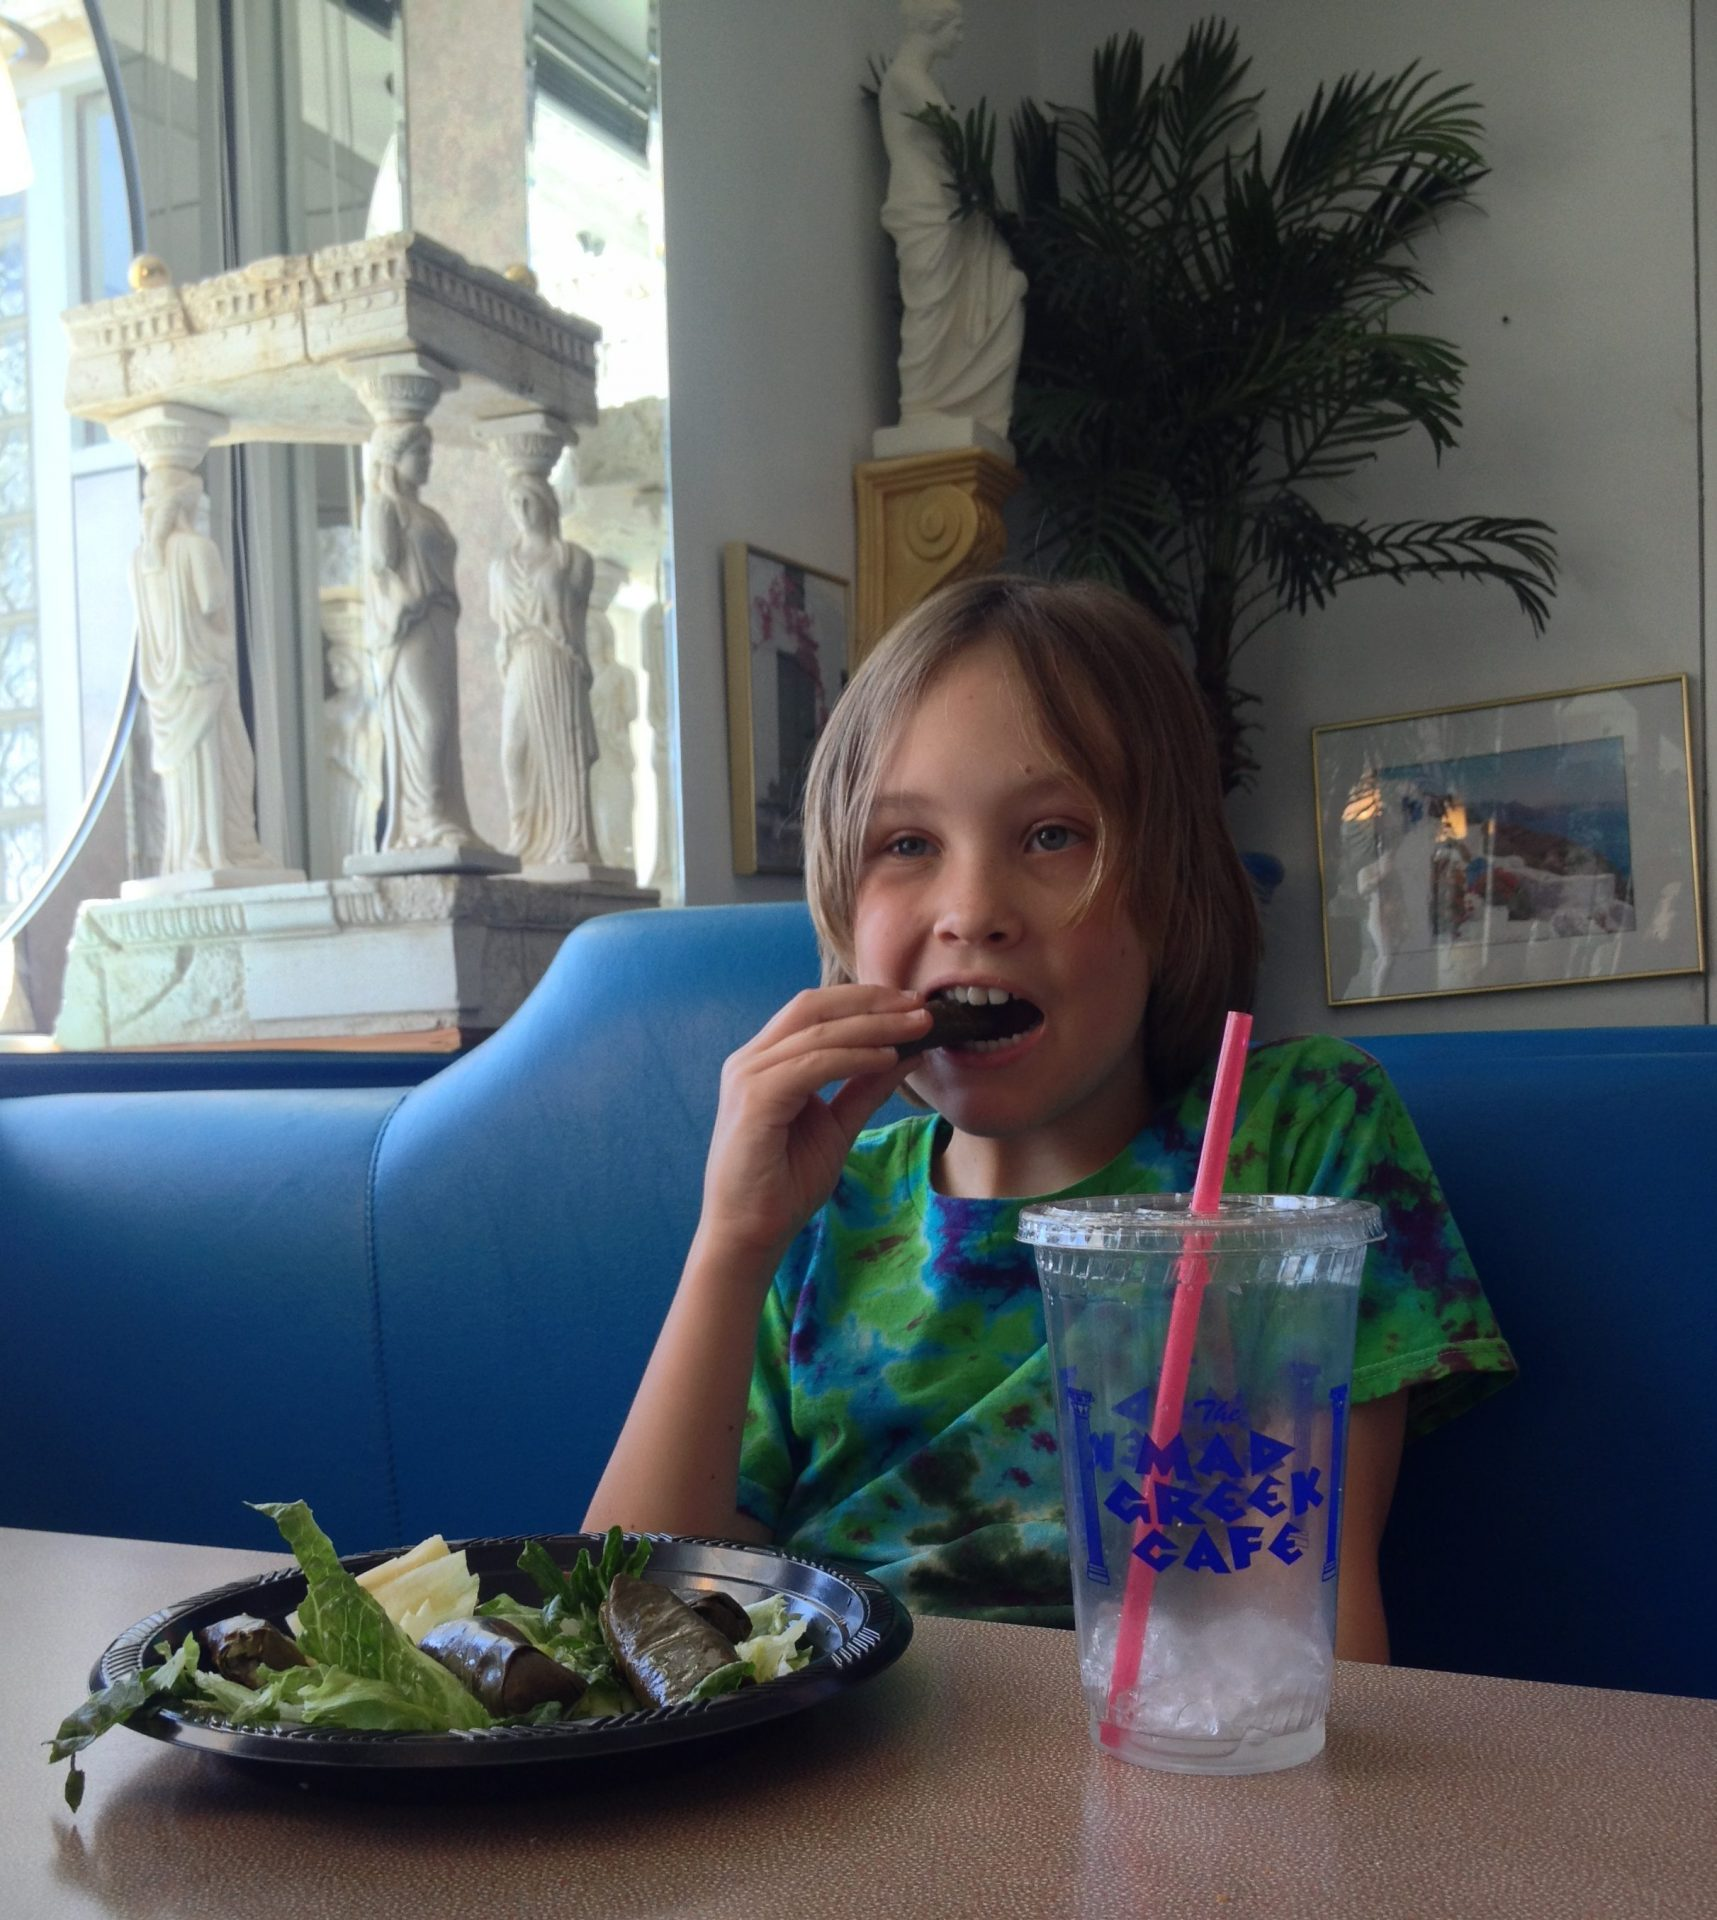 Eating dolmas at The Mad Greek